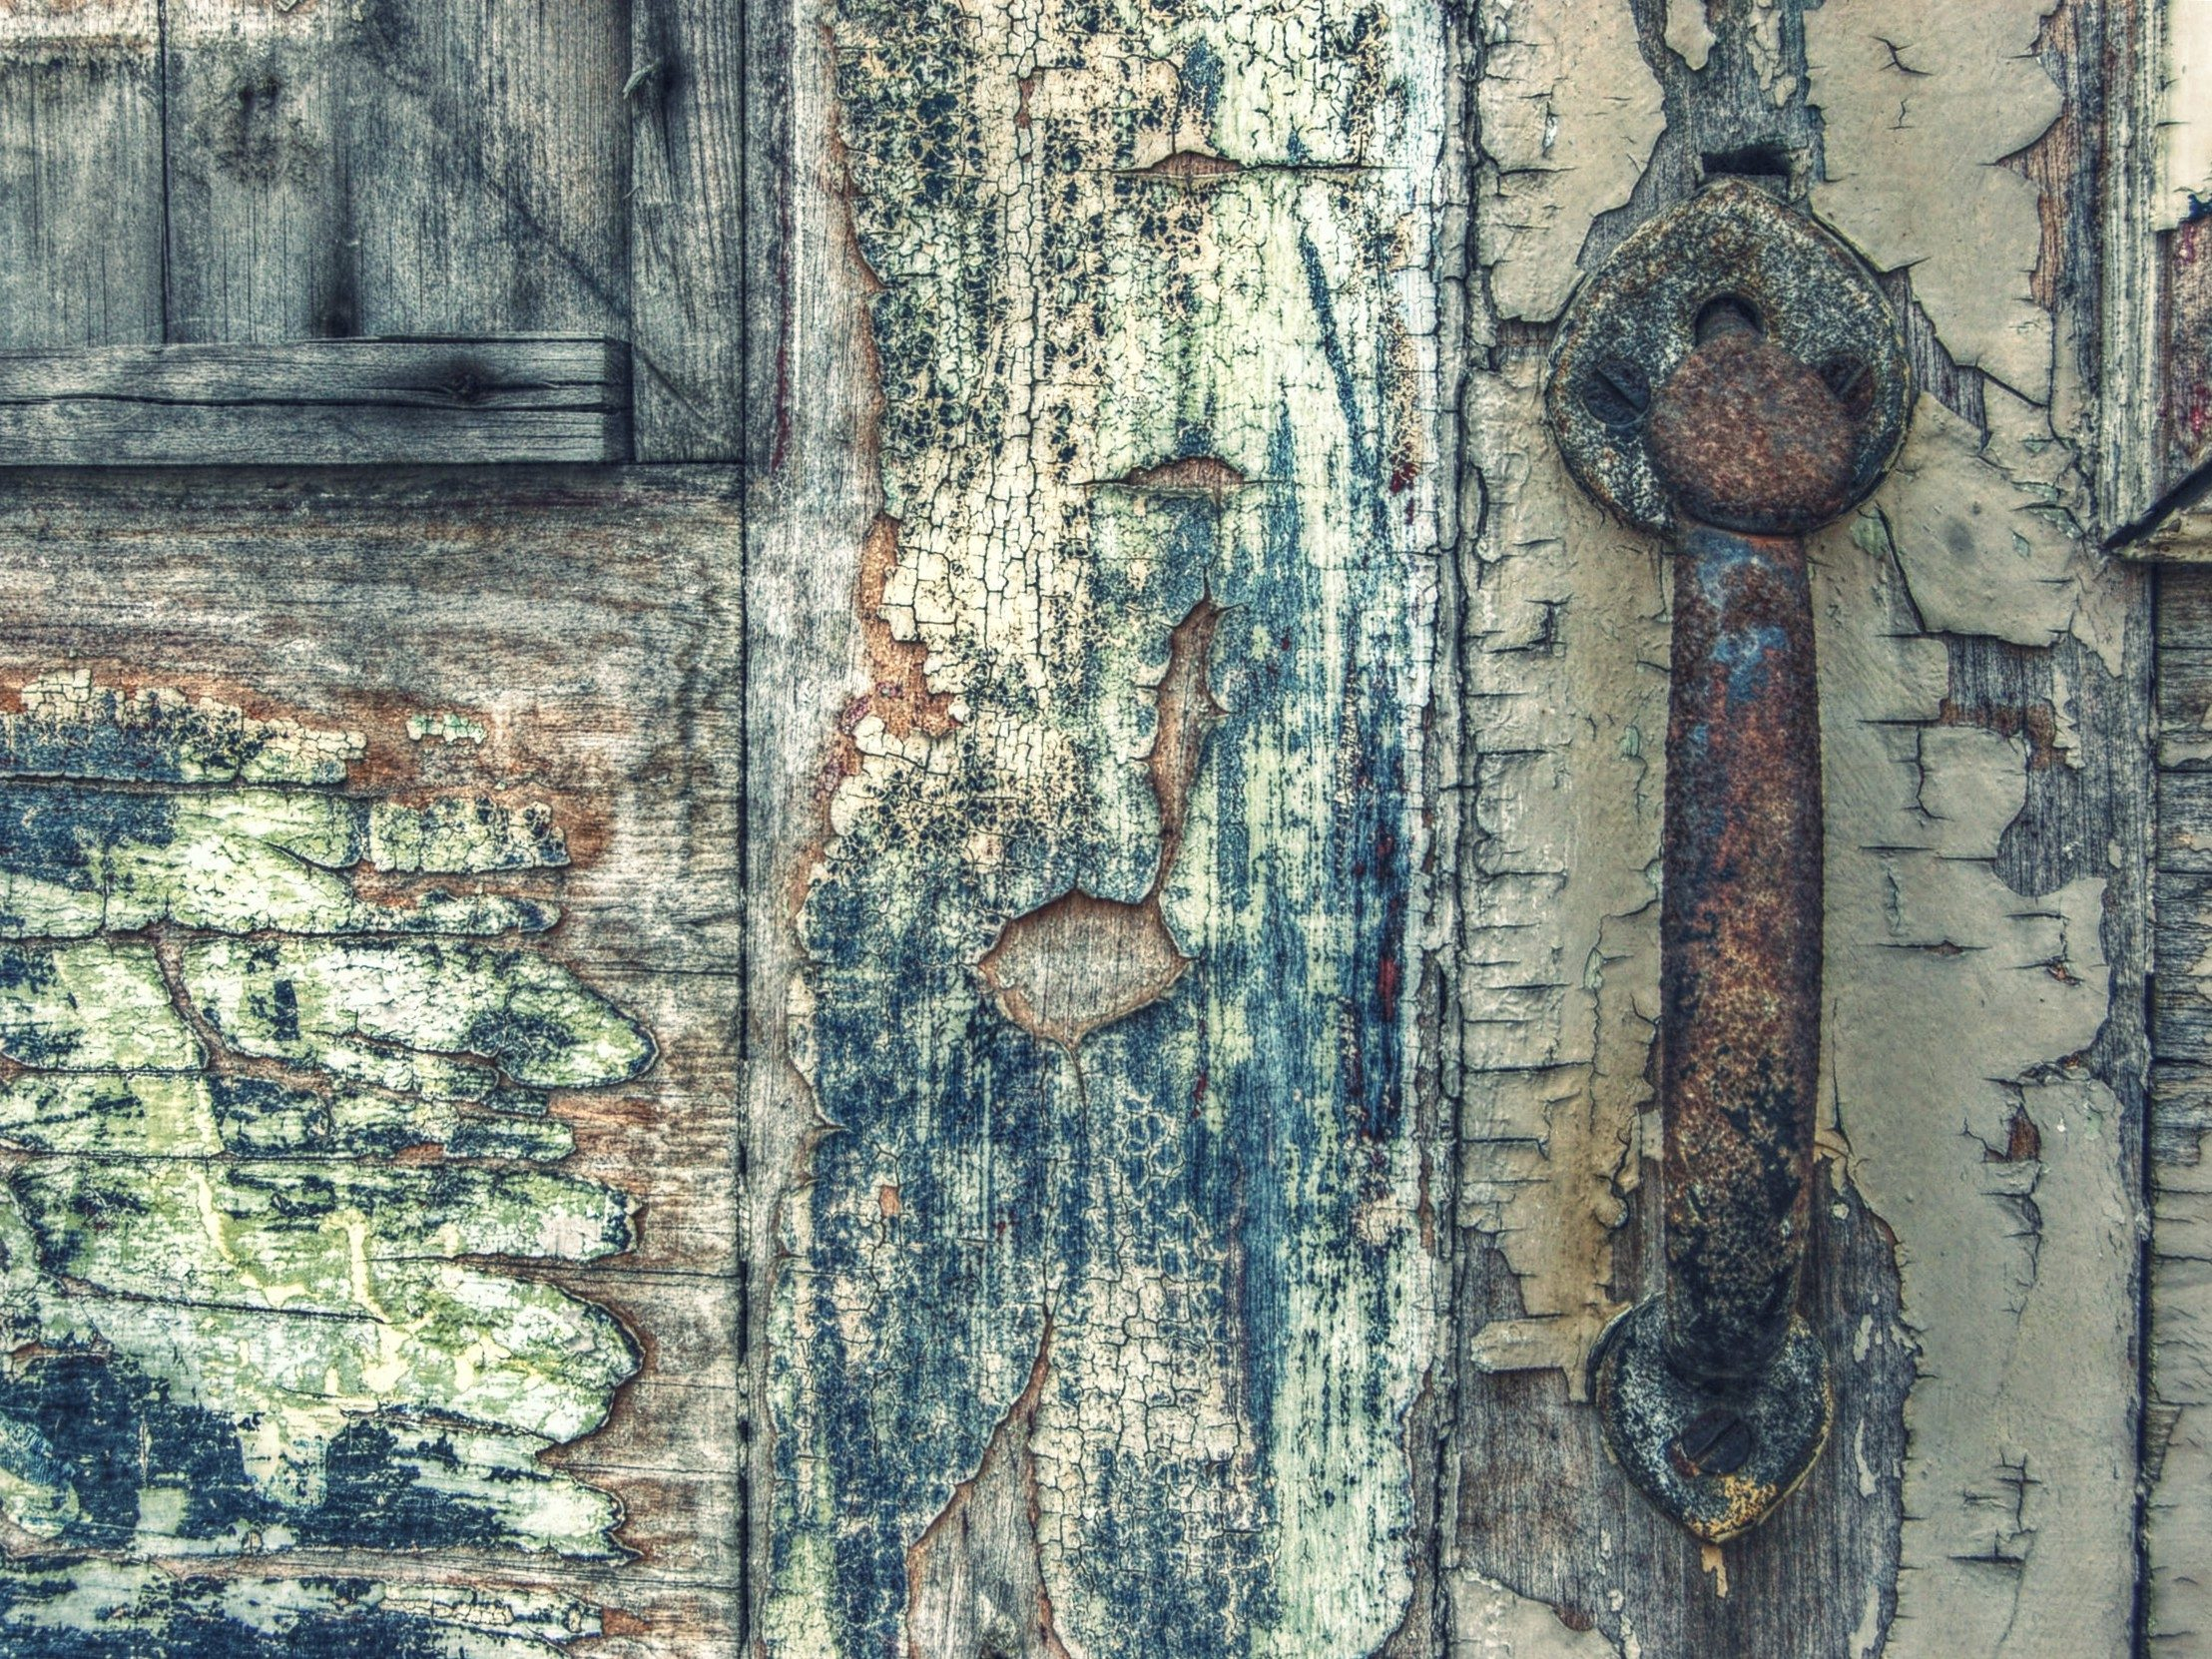 Worn and weathered